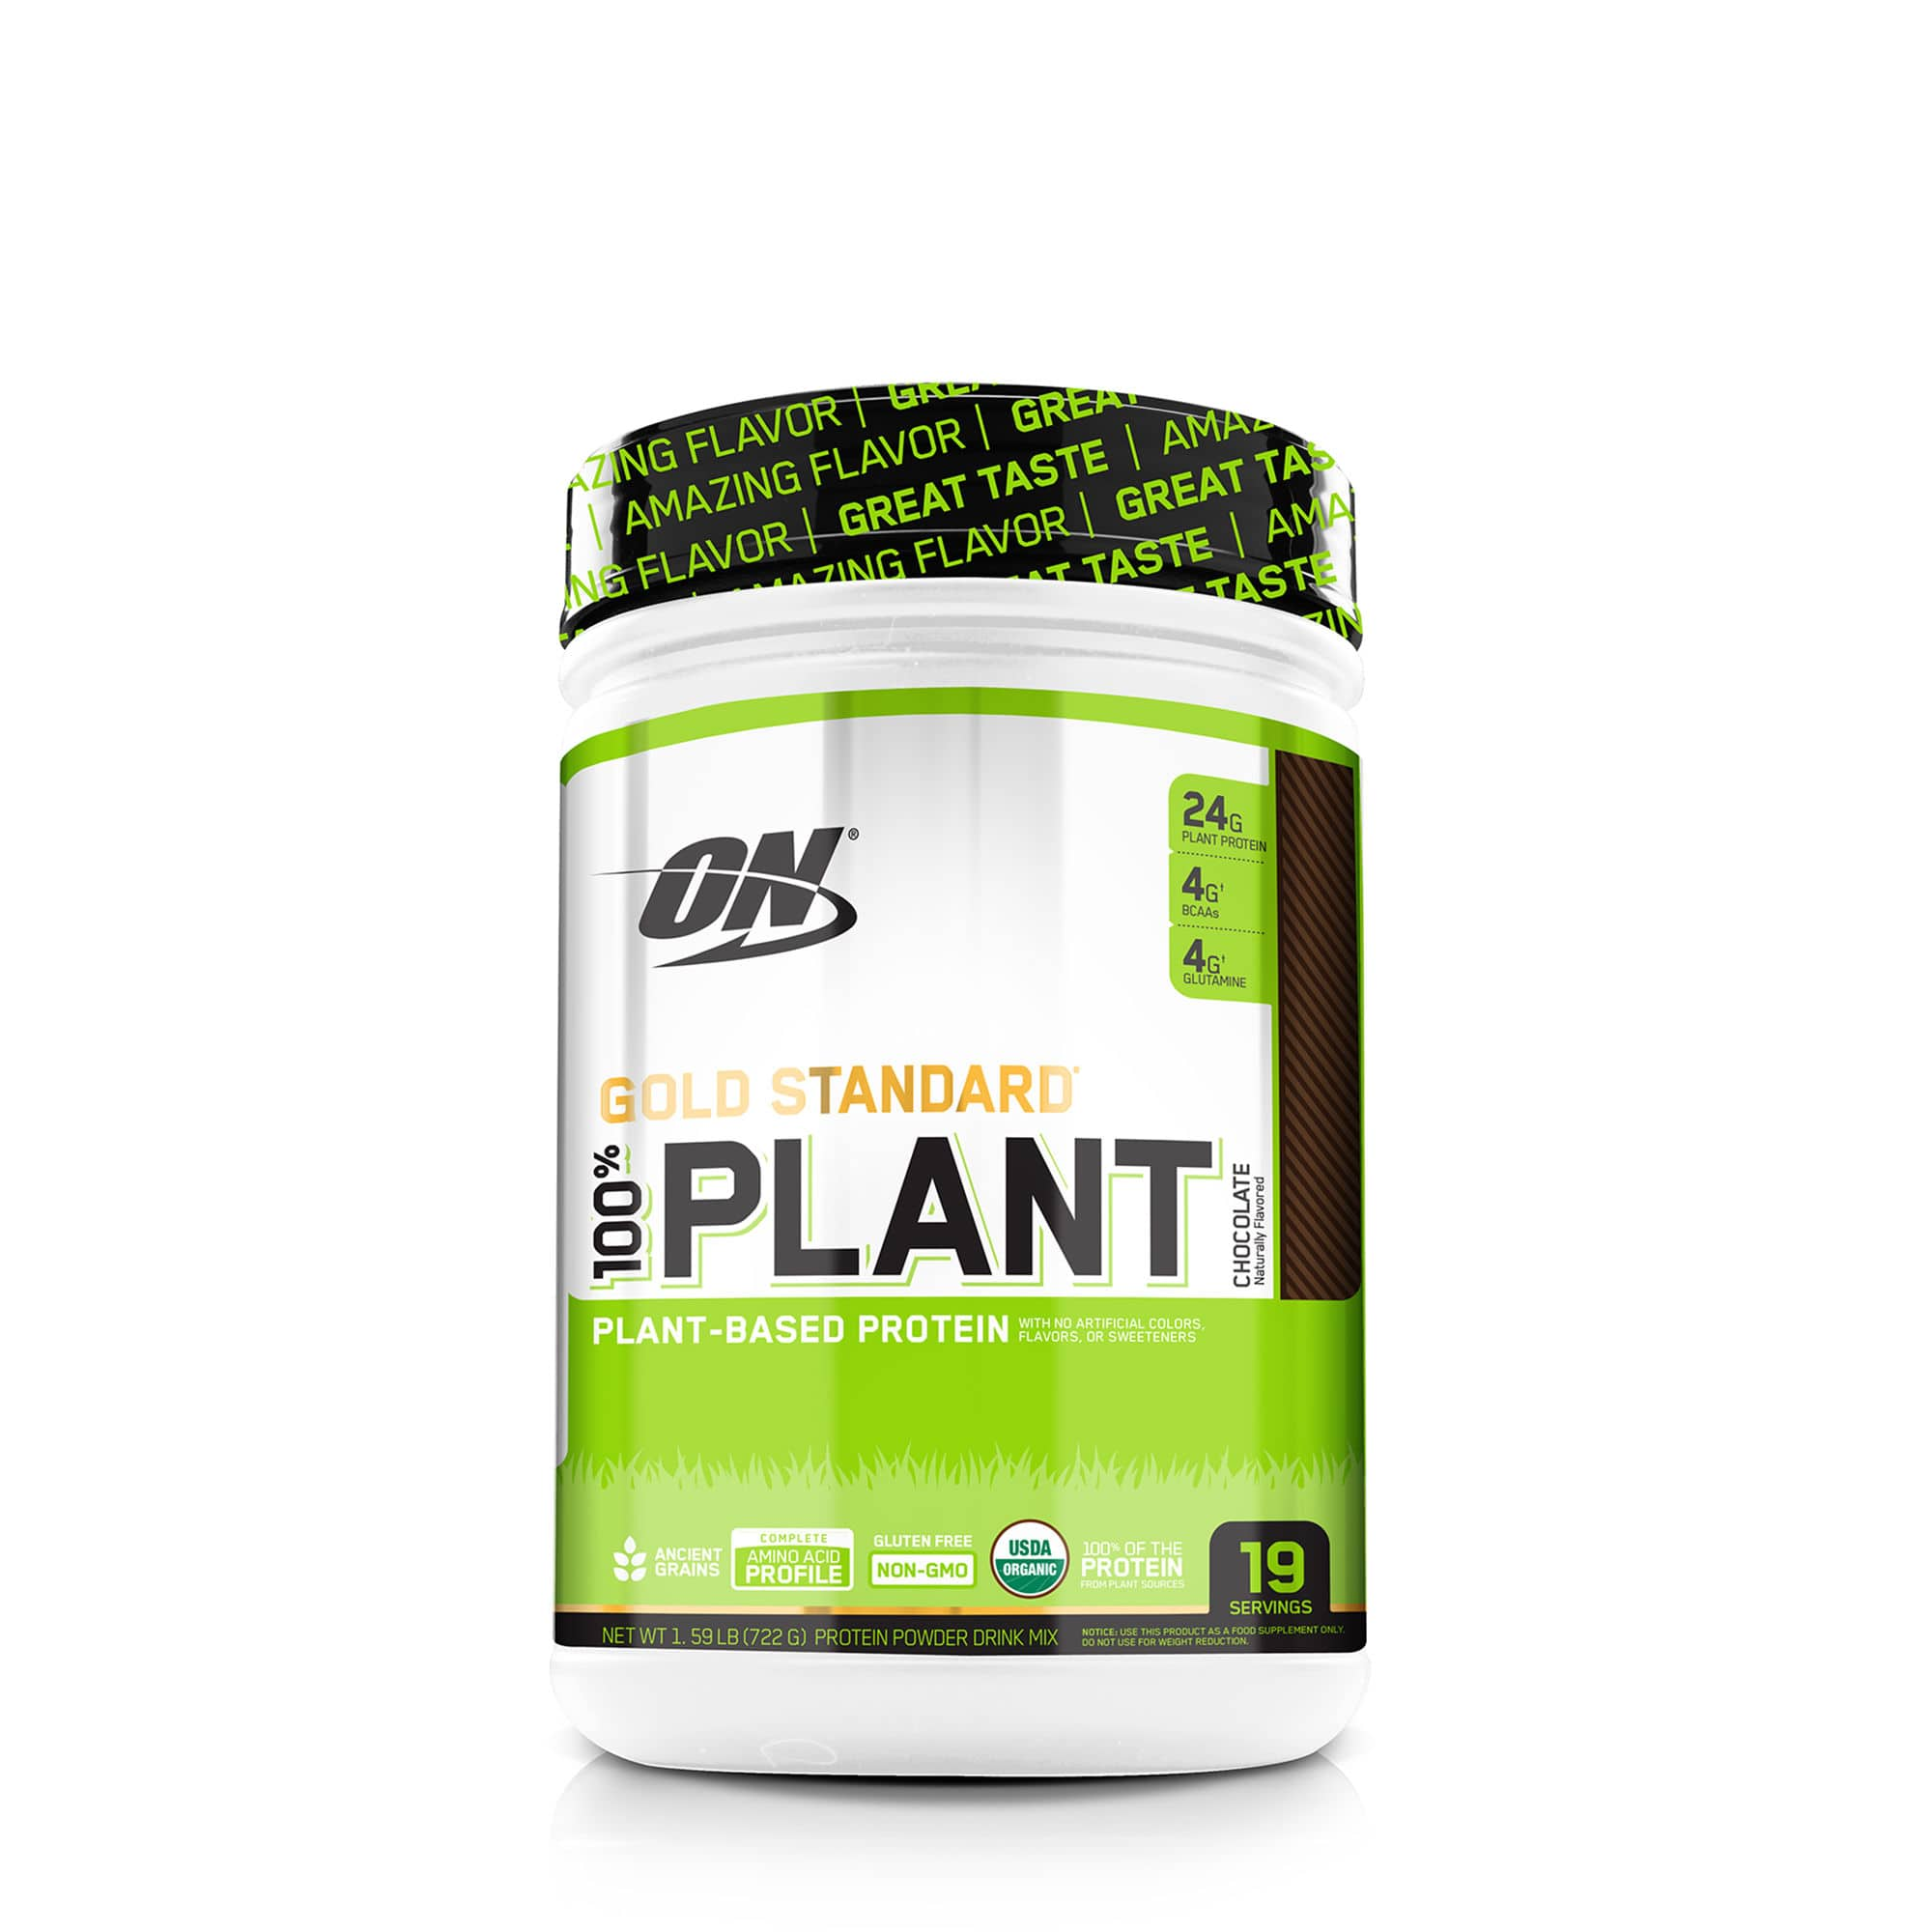 Optimum nutrition gold standard® 100% plant protein $16.66 each when you get 3